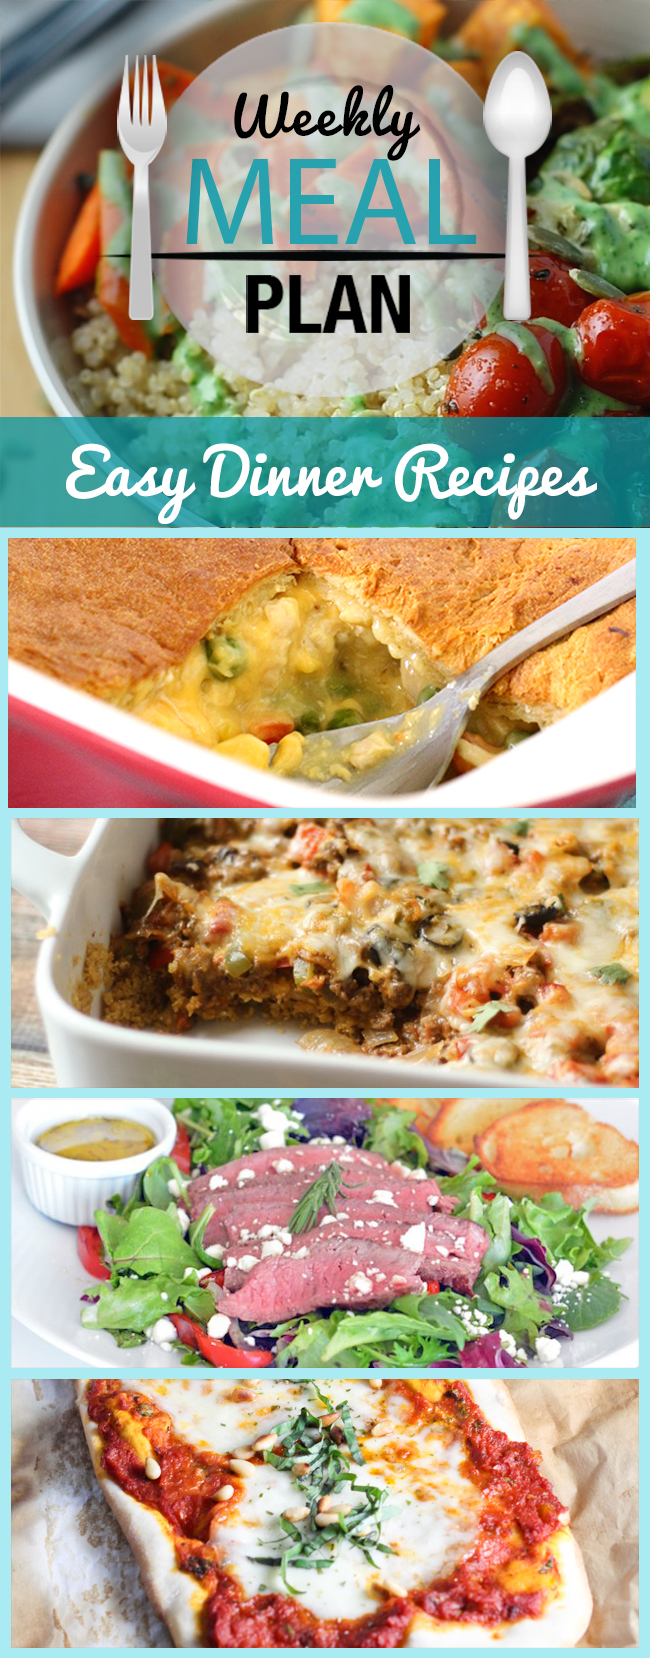 Dinner feeling stressful? Turn that around with this list of super easy recipes you can make this week!